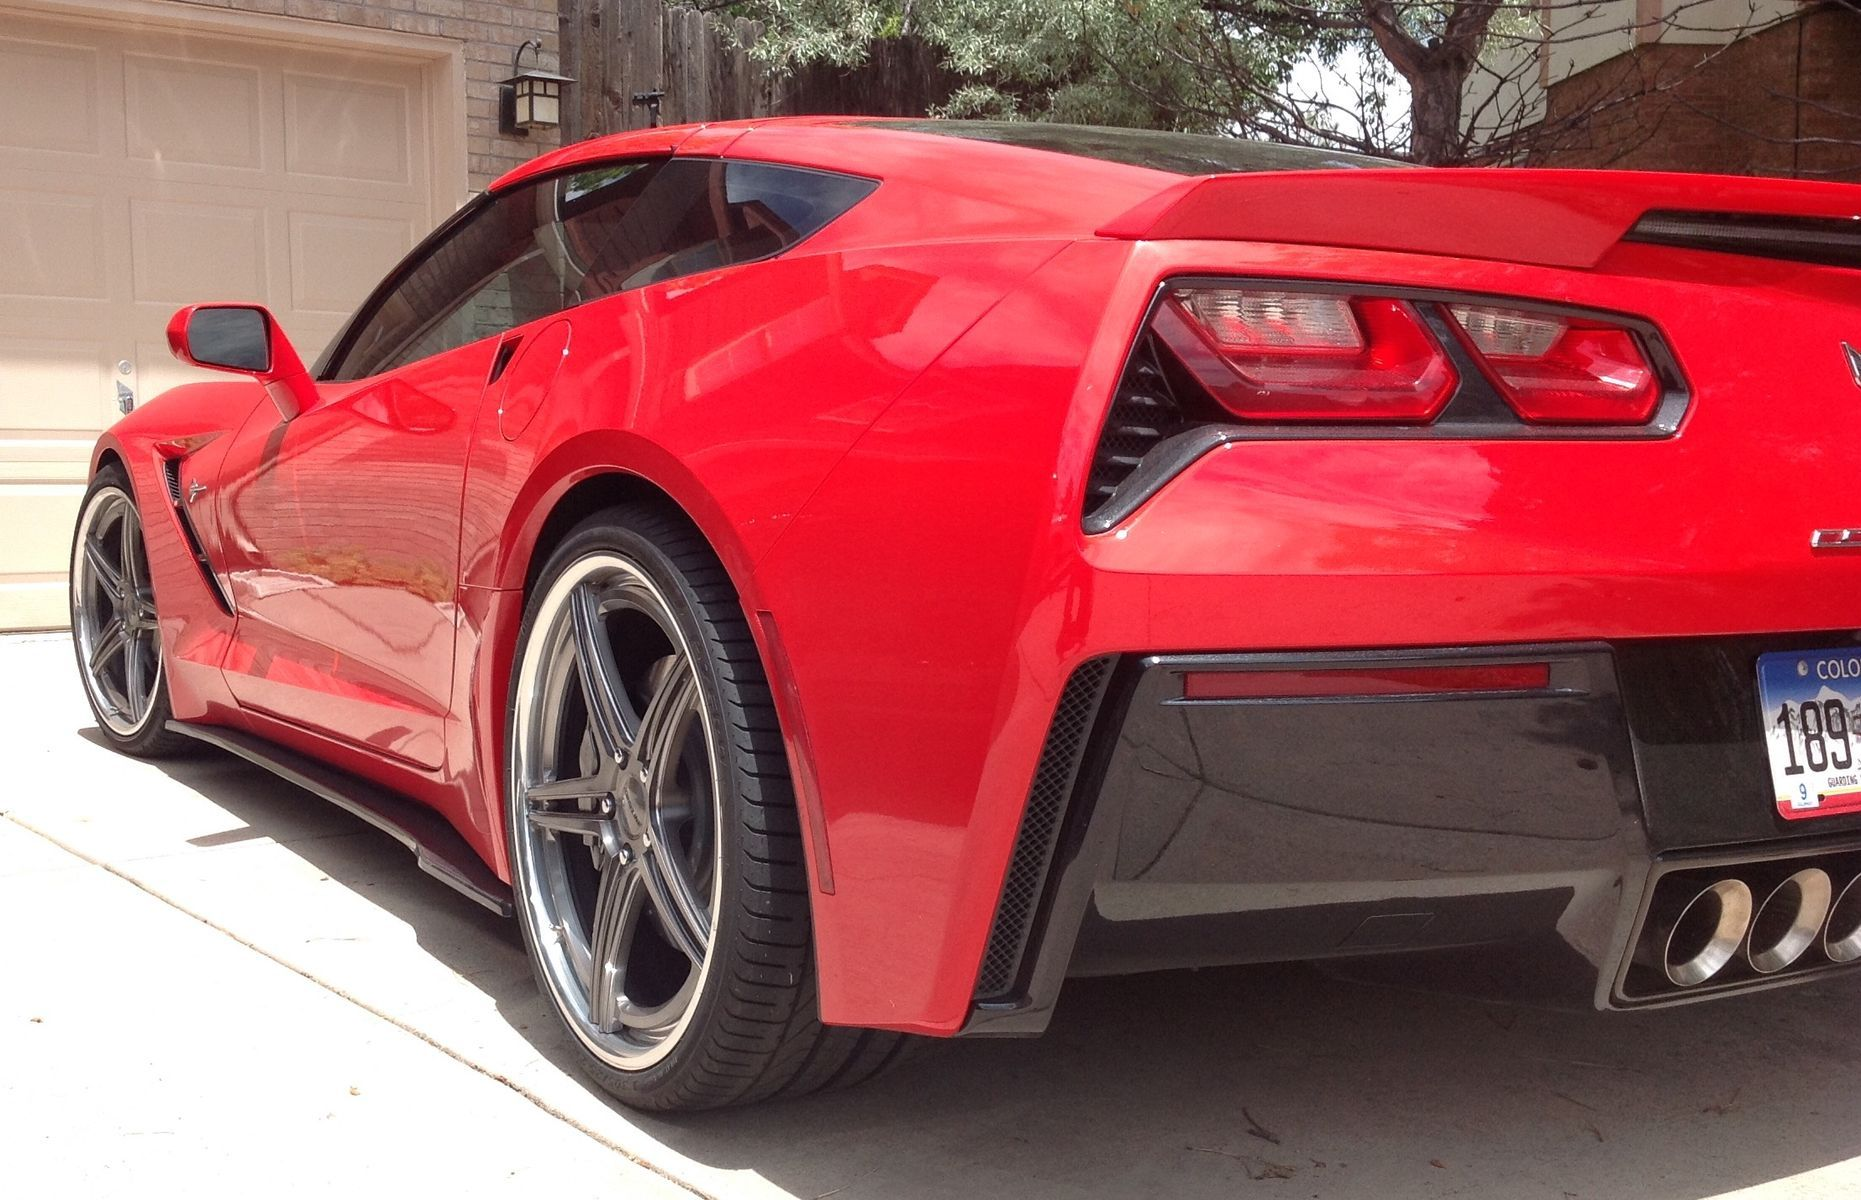 2014 Chevrolet Corvette | C7 Corvette on Forgeline SC3C-SL Wheels